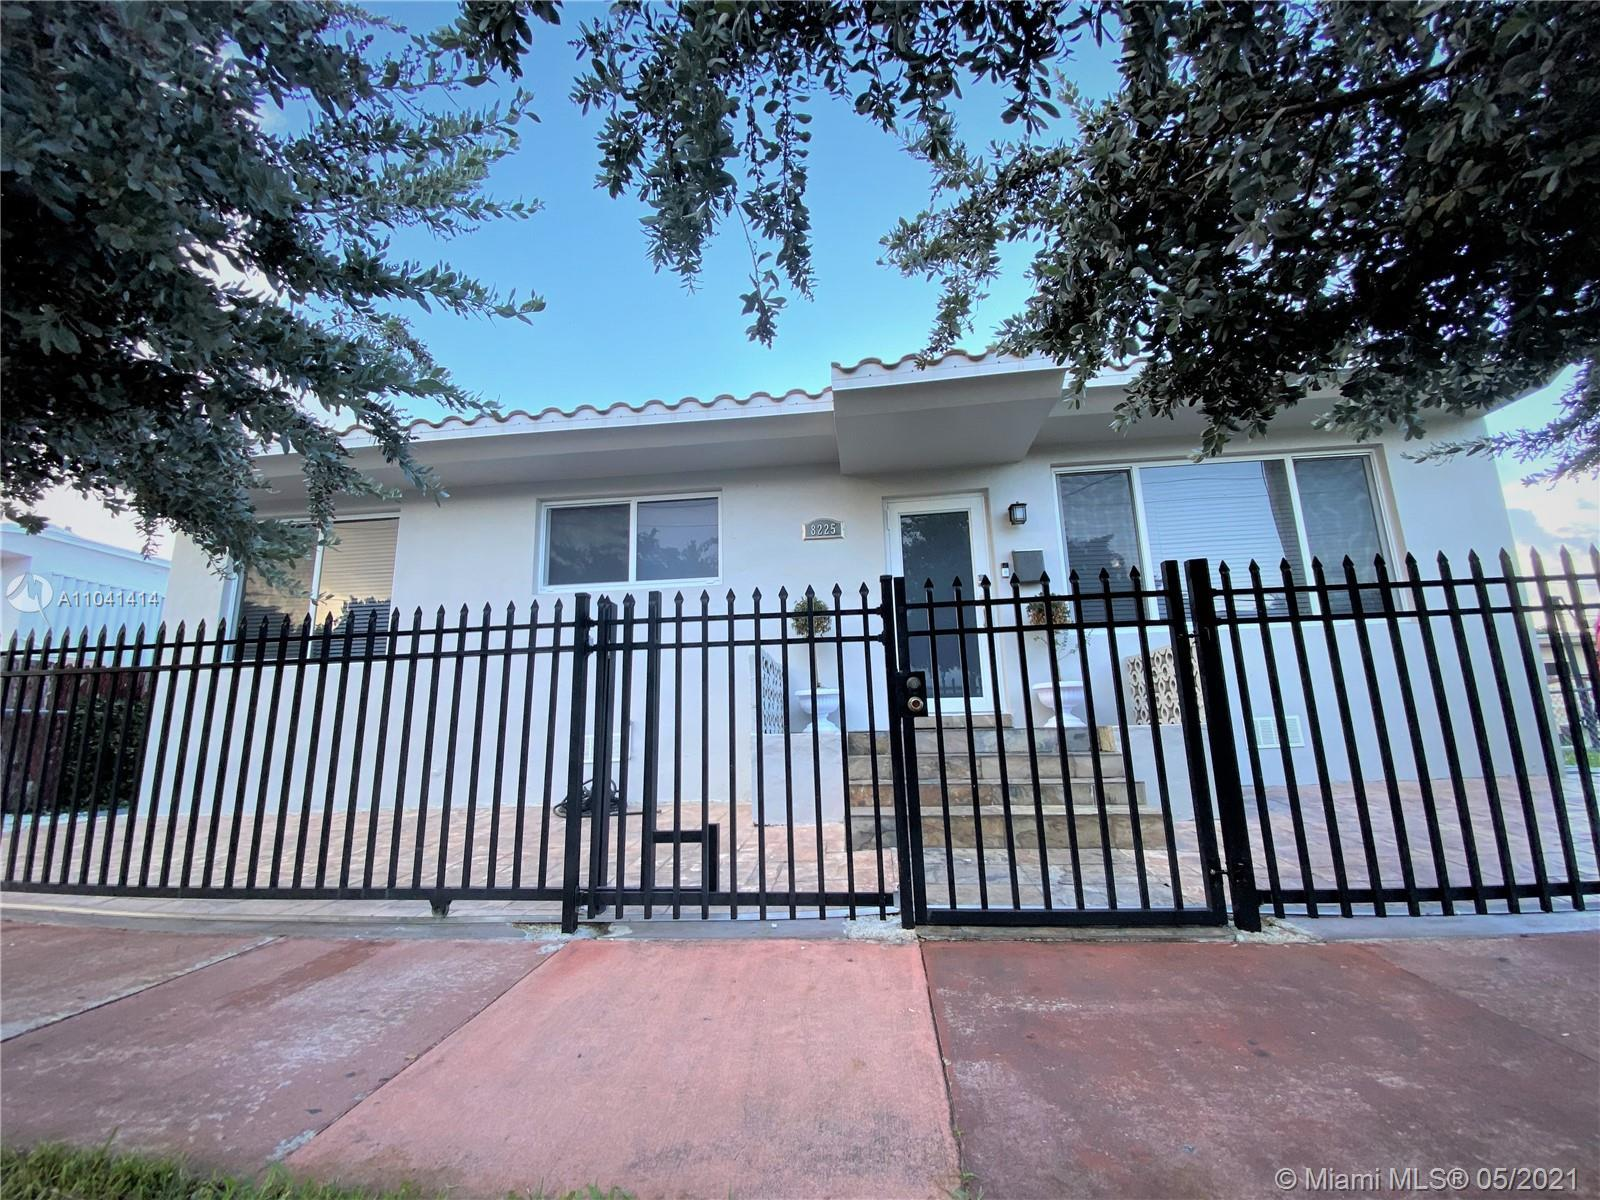 Rare opportunity to own this gem located in the highly desirable City of Miami Beach. This house is